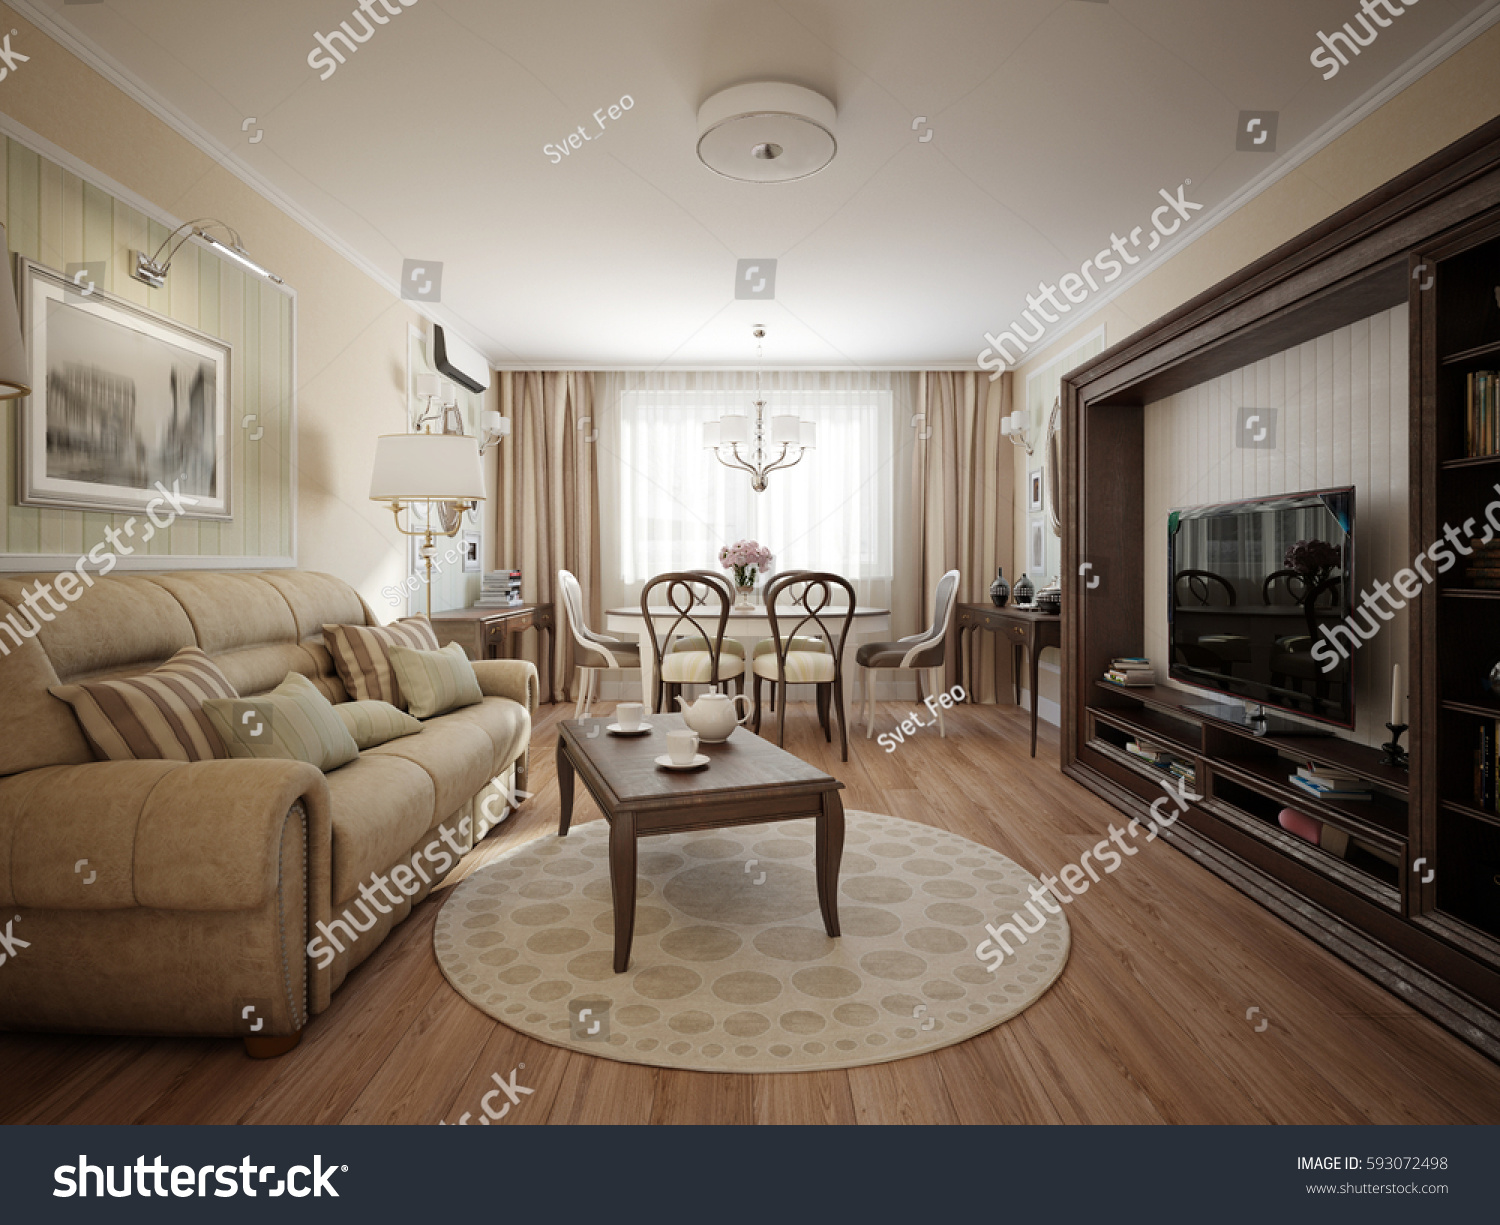 modern classic living room. Modern classic living room and dining interior design  3d rendering Classic Living Room Dining Stock Illustration